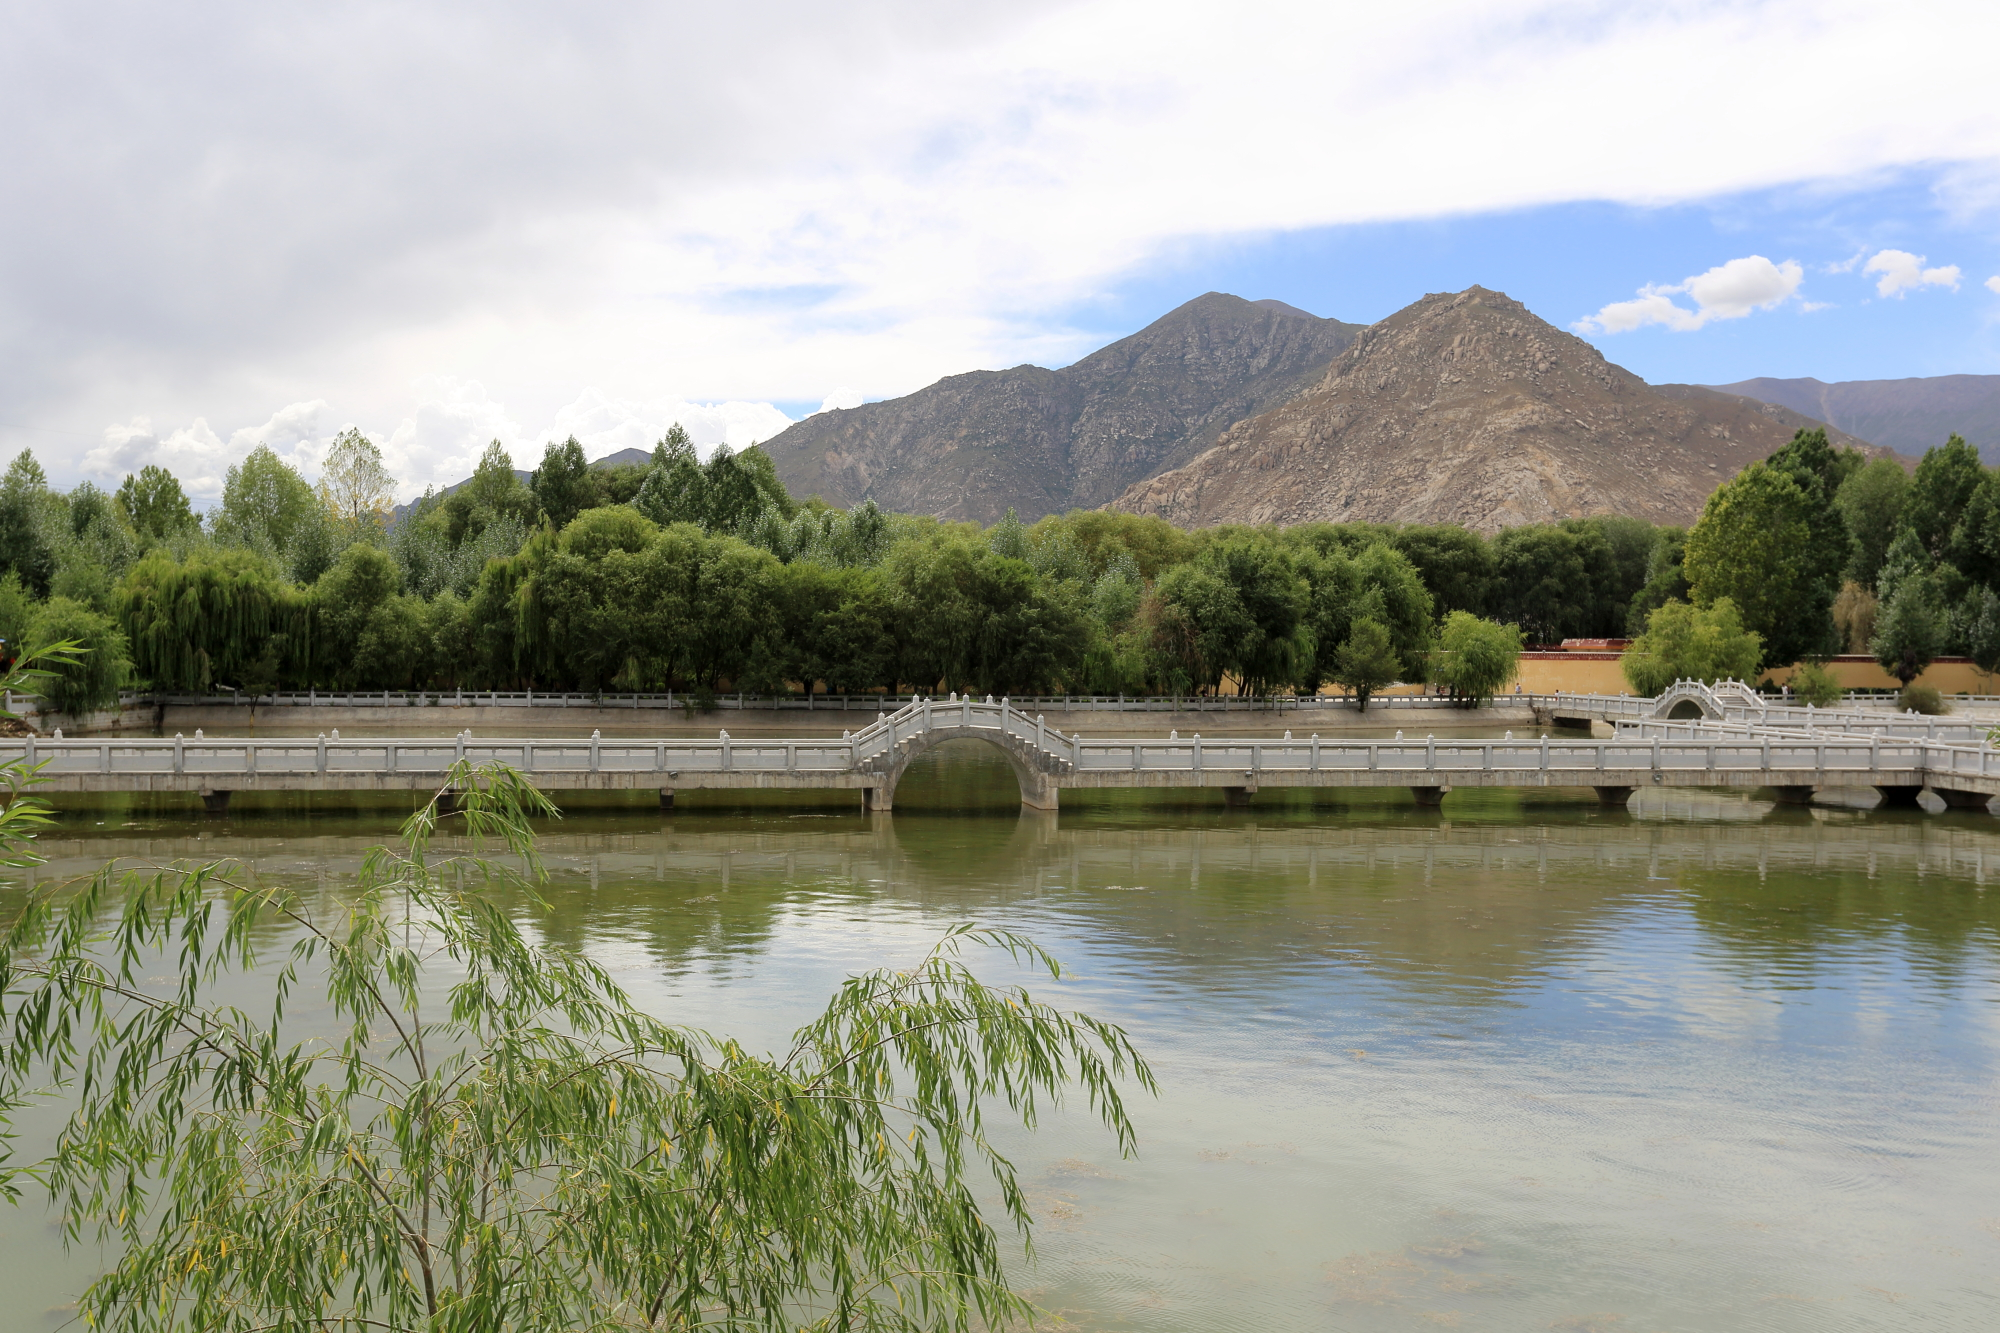 Summer scenery of Lhasa